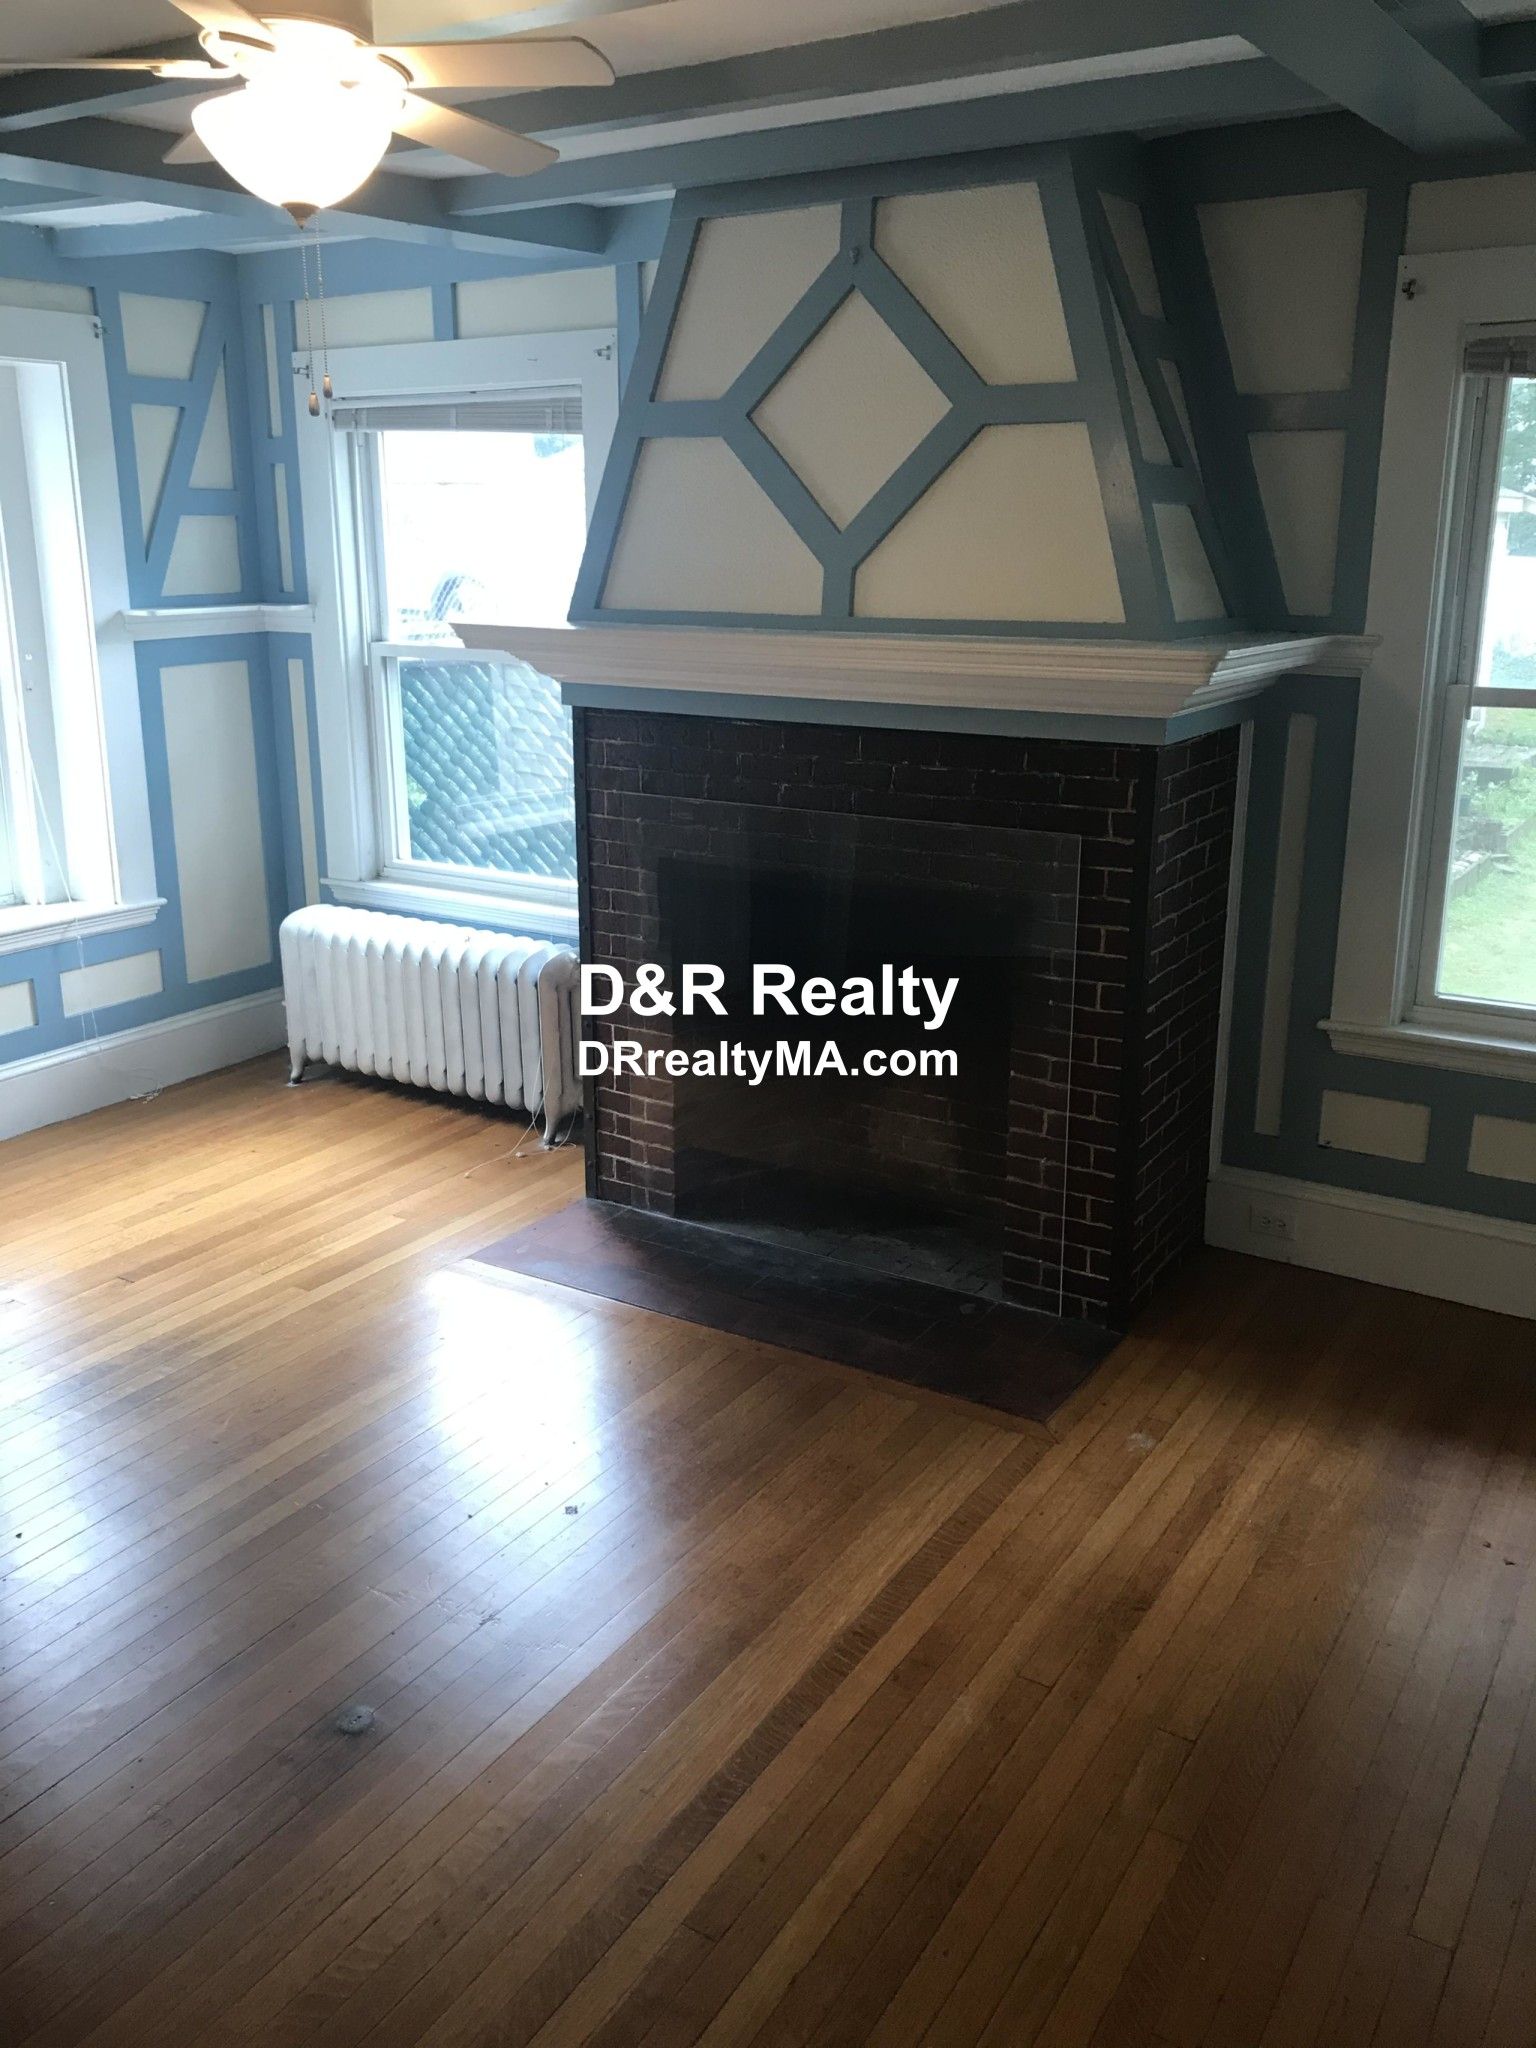 3 Beds, 1.5 Baths apartment in Somerville for $3,300